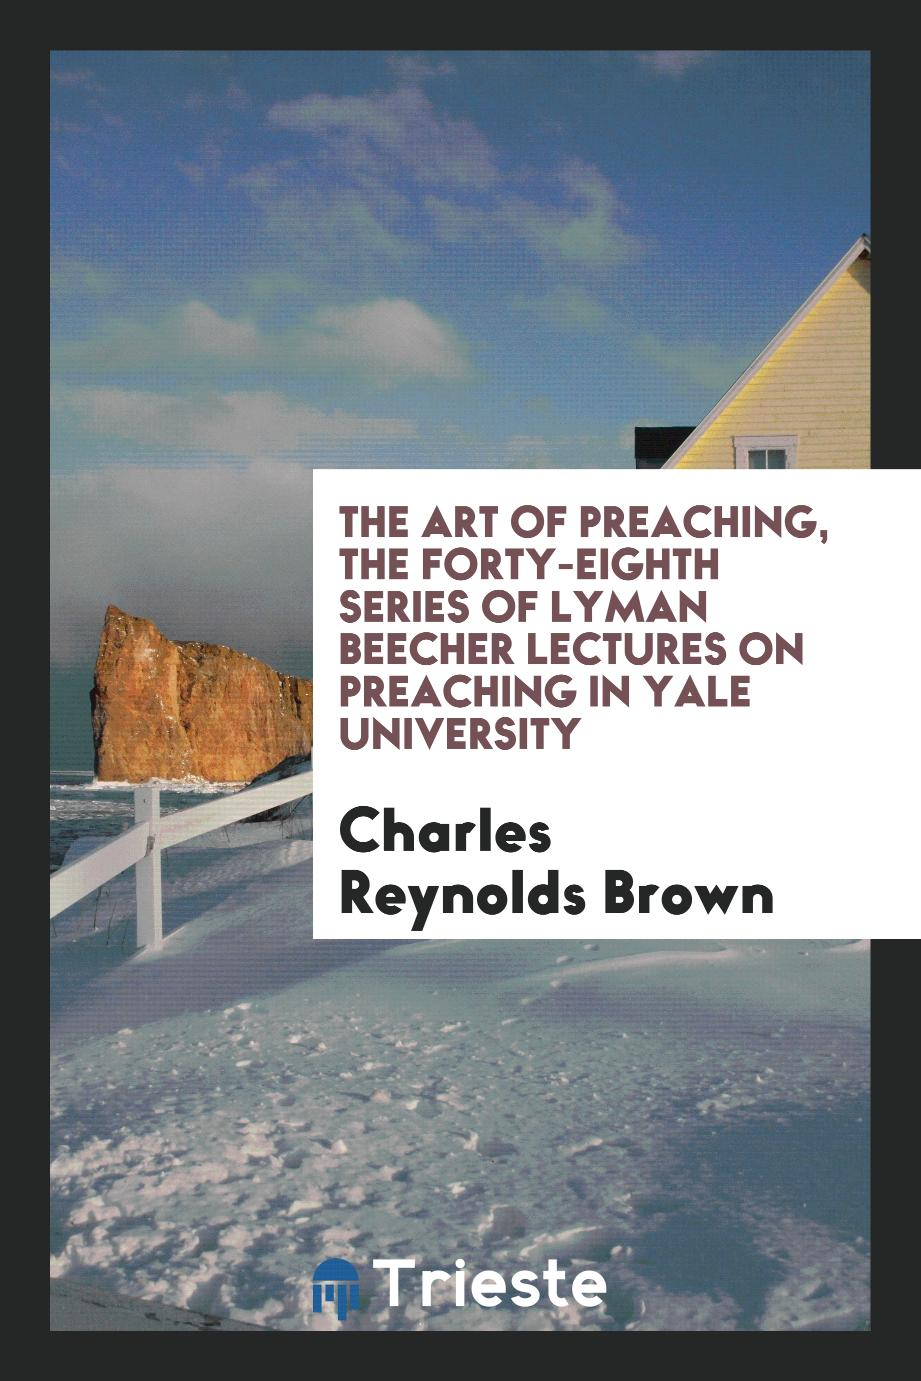 The Art of Preaching, the Forty-Eighth Series of Lyman Beecher Lectures on Preaching in Yale University